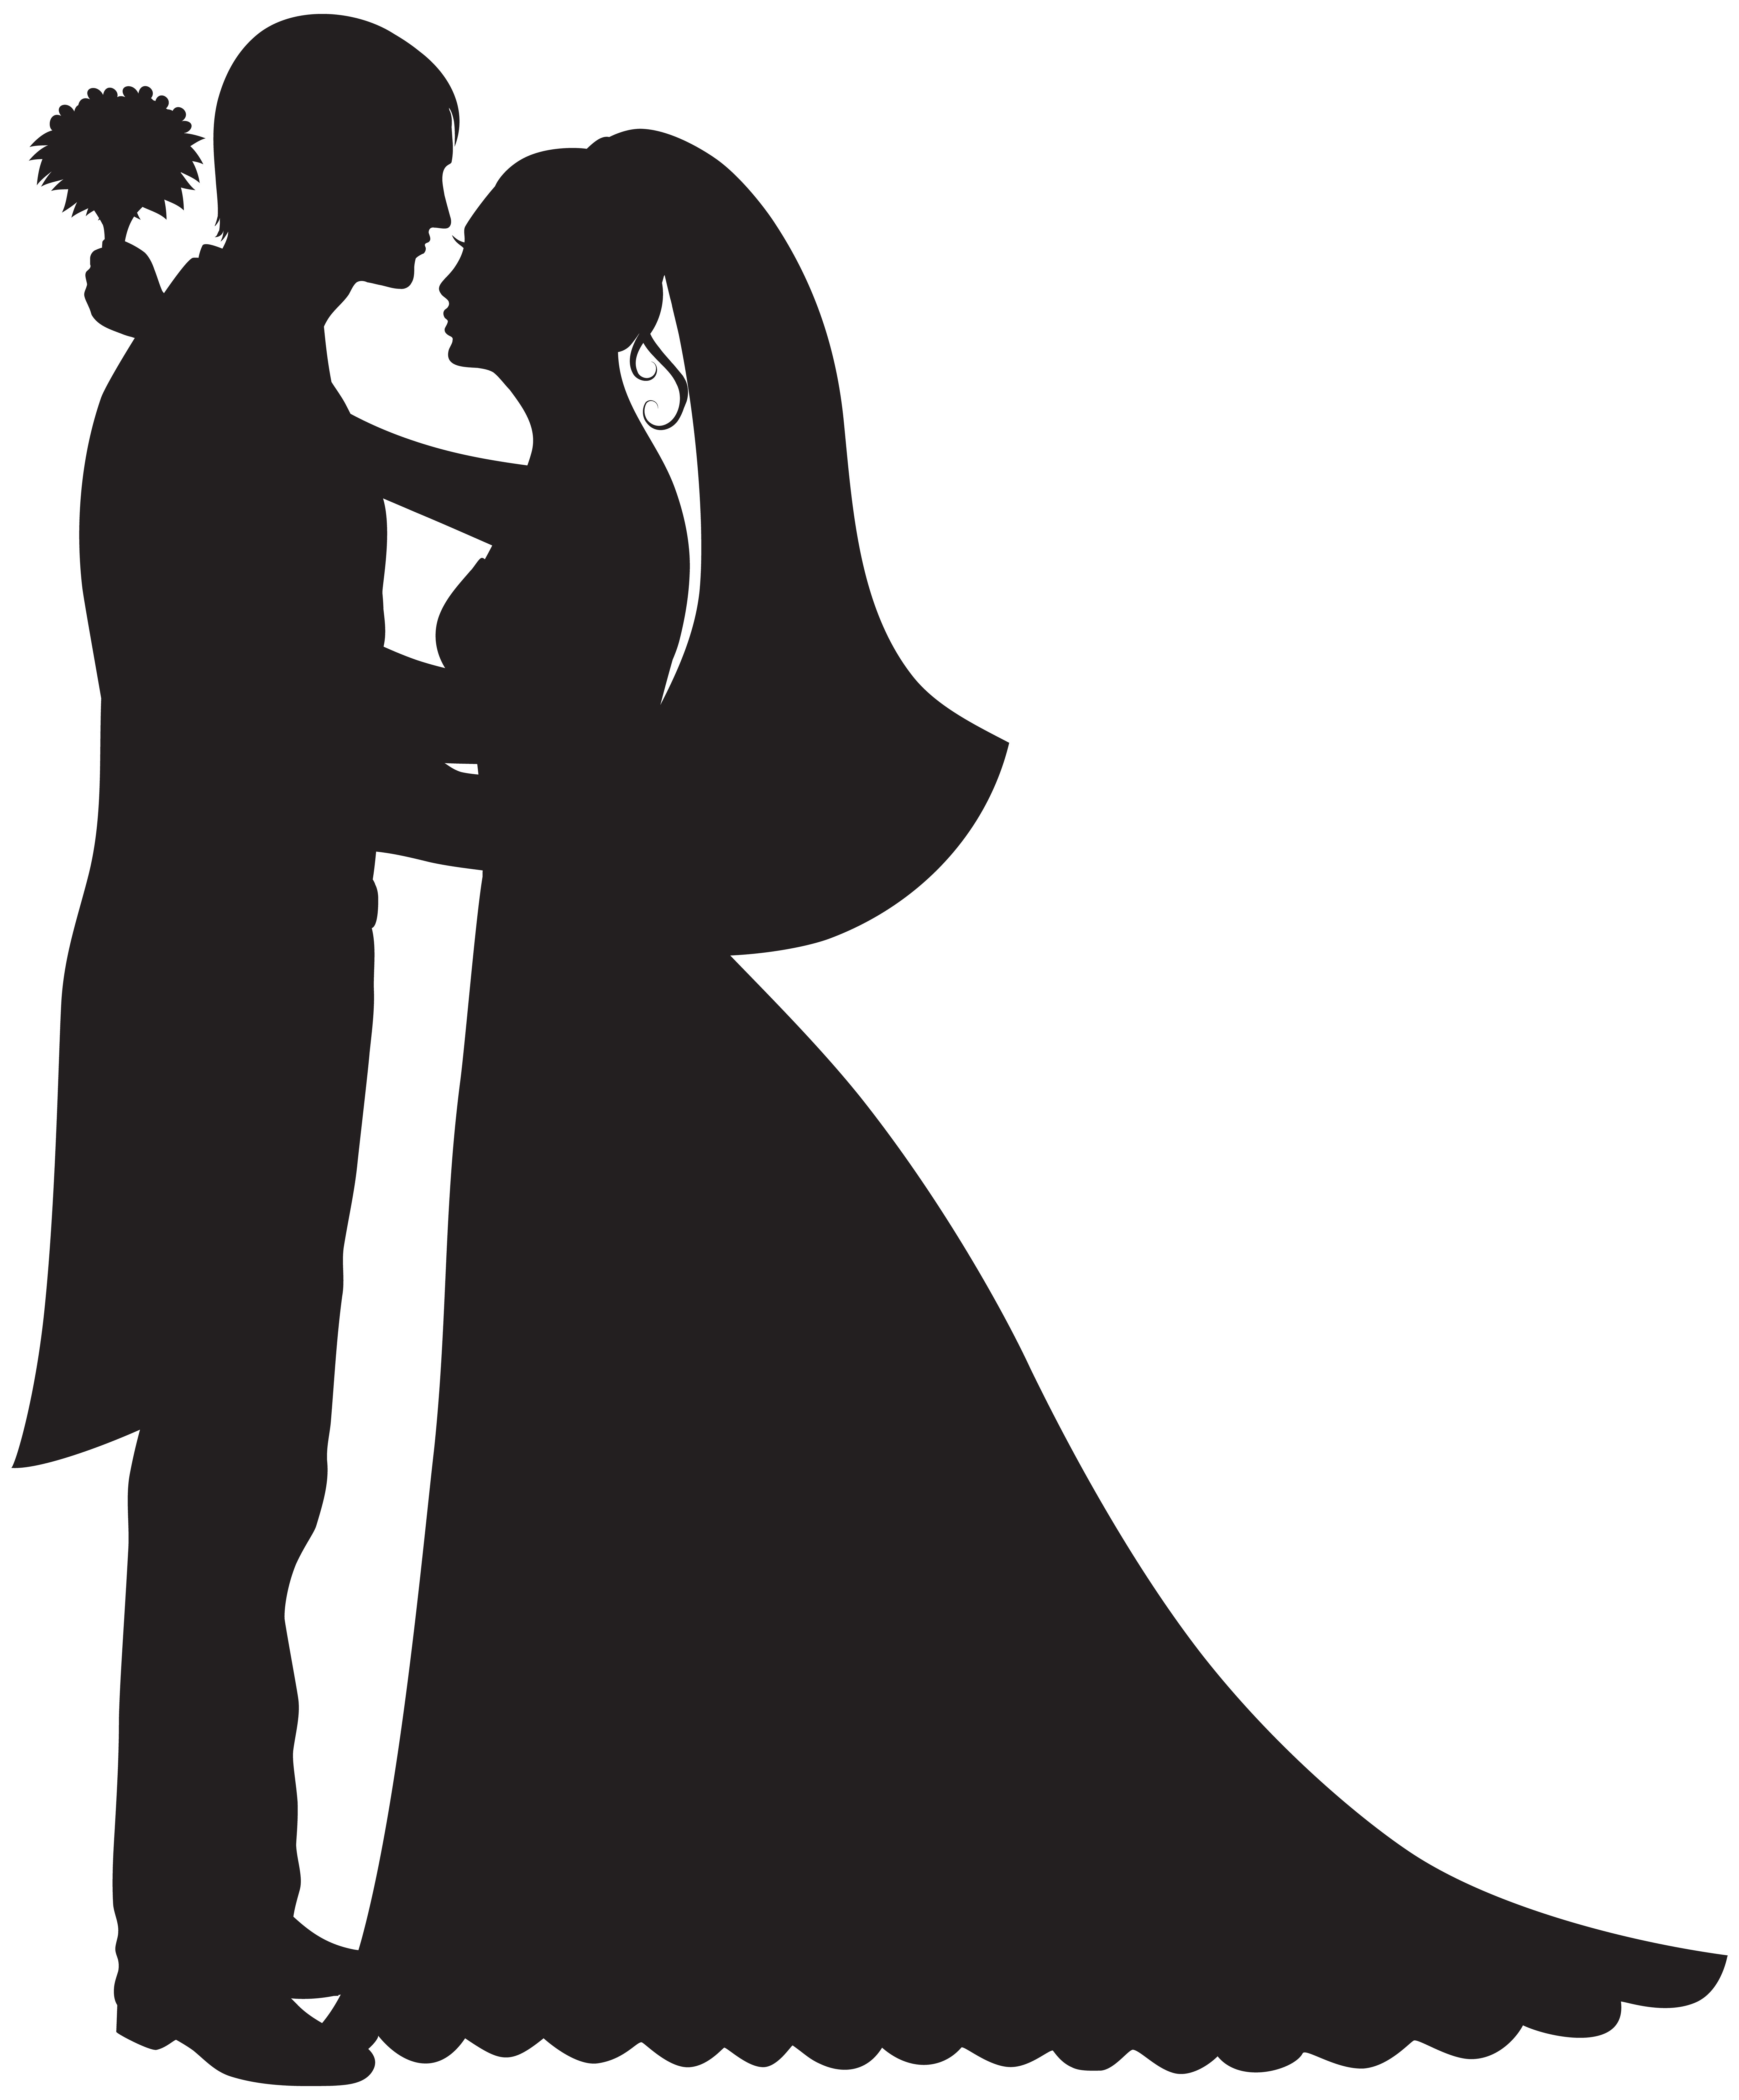 Wedding clip art png. Bride and groom silhouette